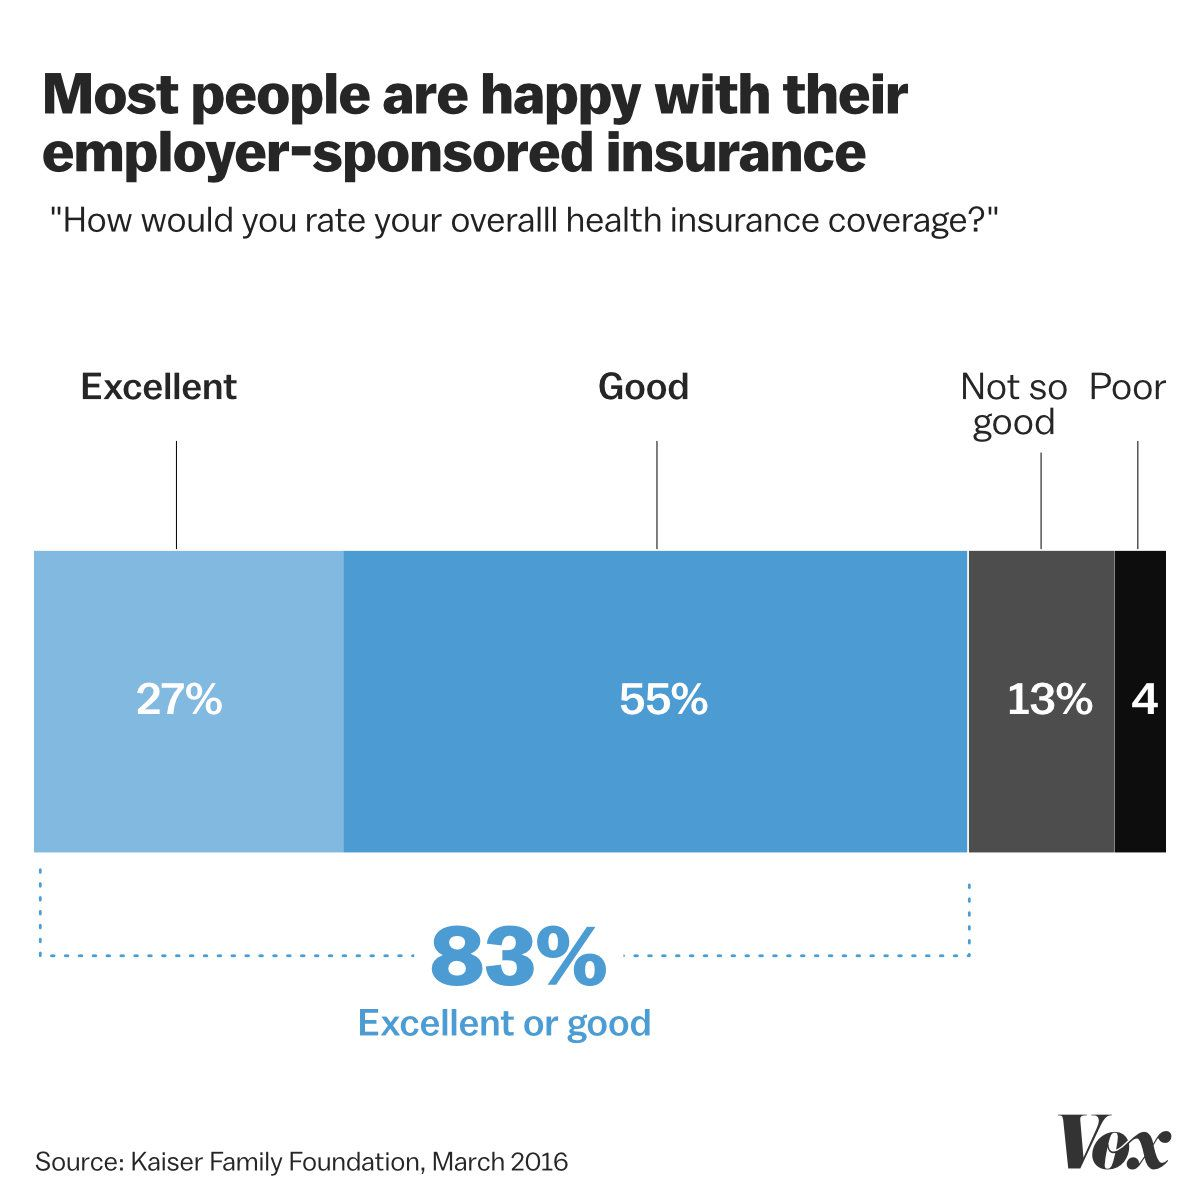 Chart shows 83% are happy with their employer-sponsored insurance